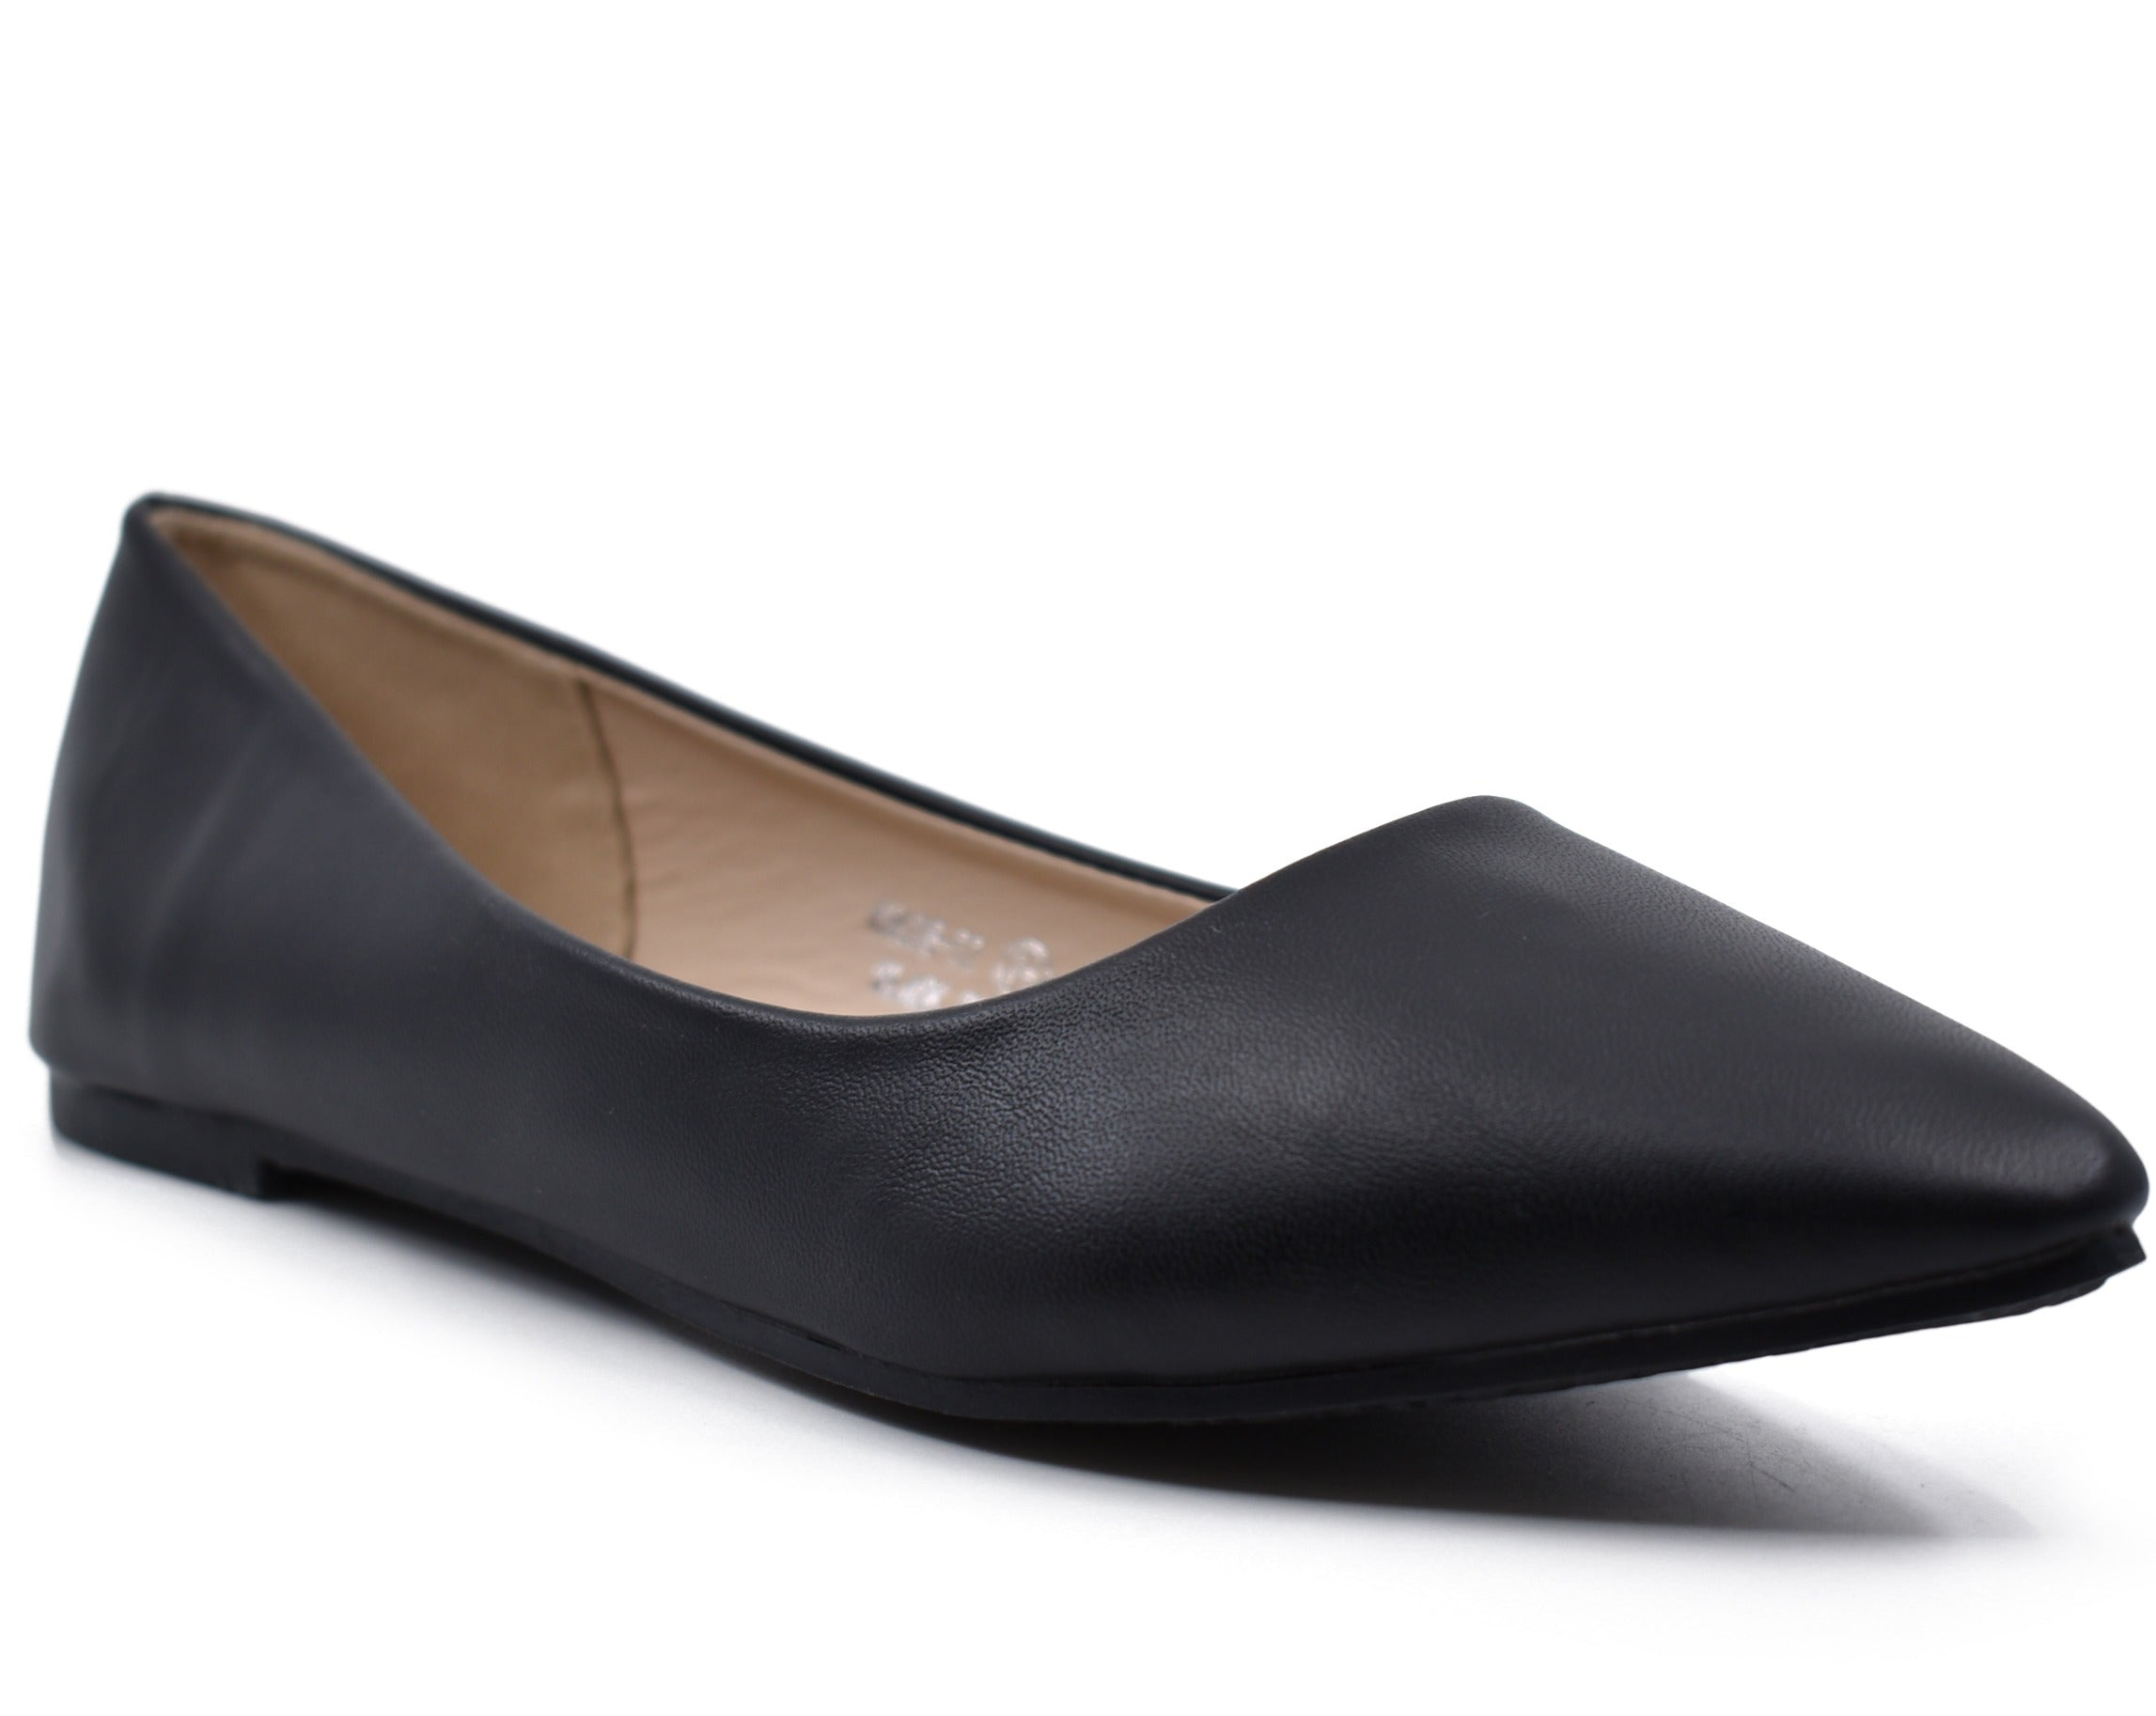 Angie Faux Leather Pointed Toe Ballet Flats